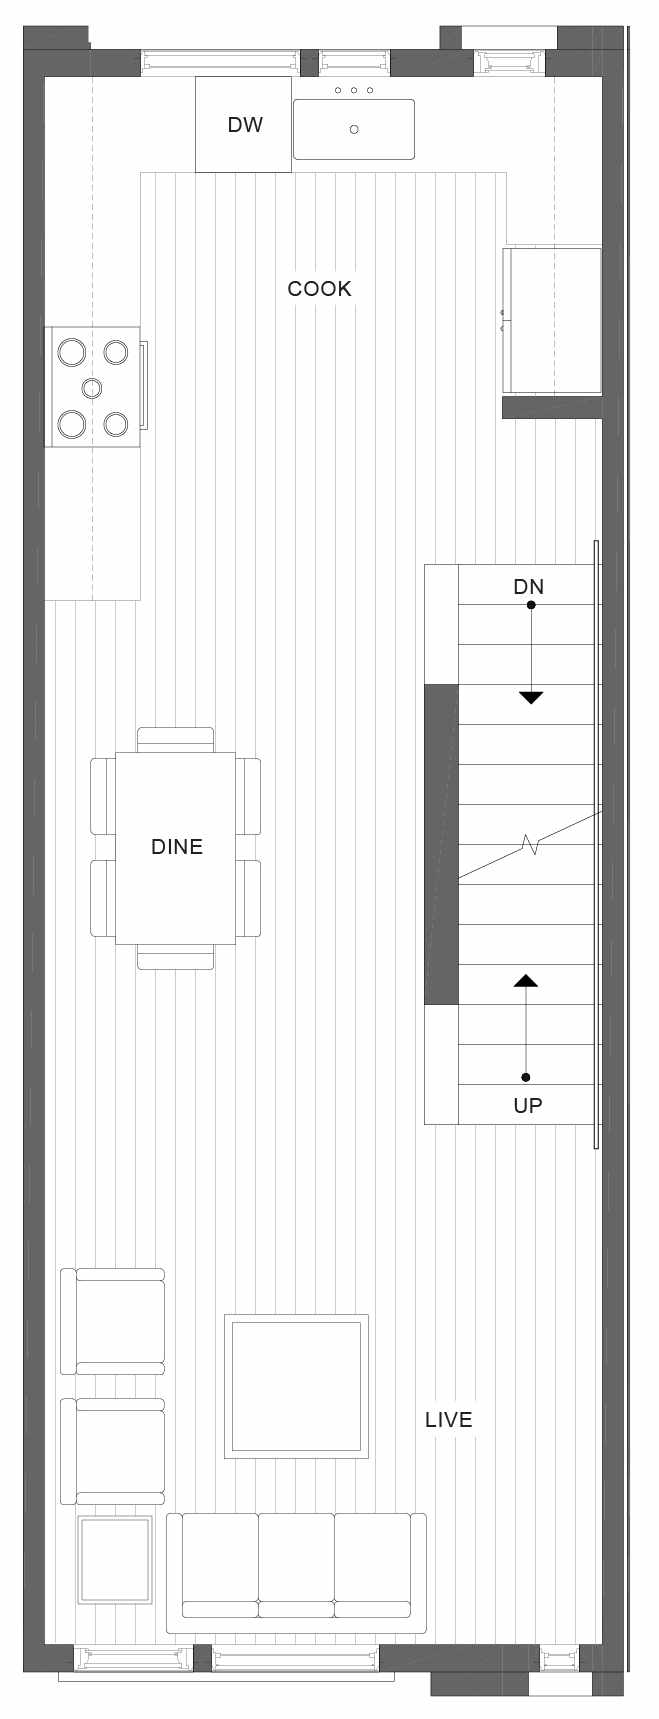 Second Floor Plan of 1105E 14th Ave in the Corazon Central Townhomes